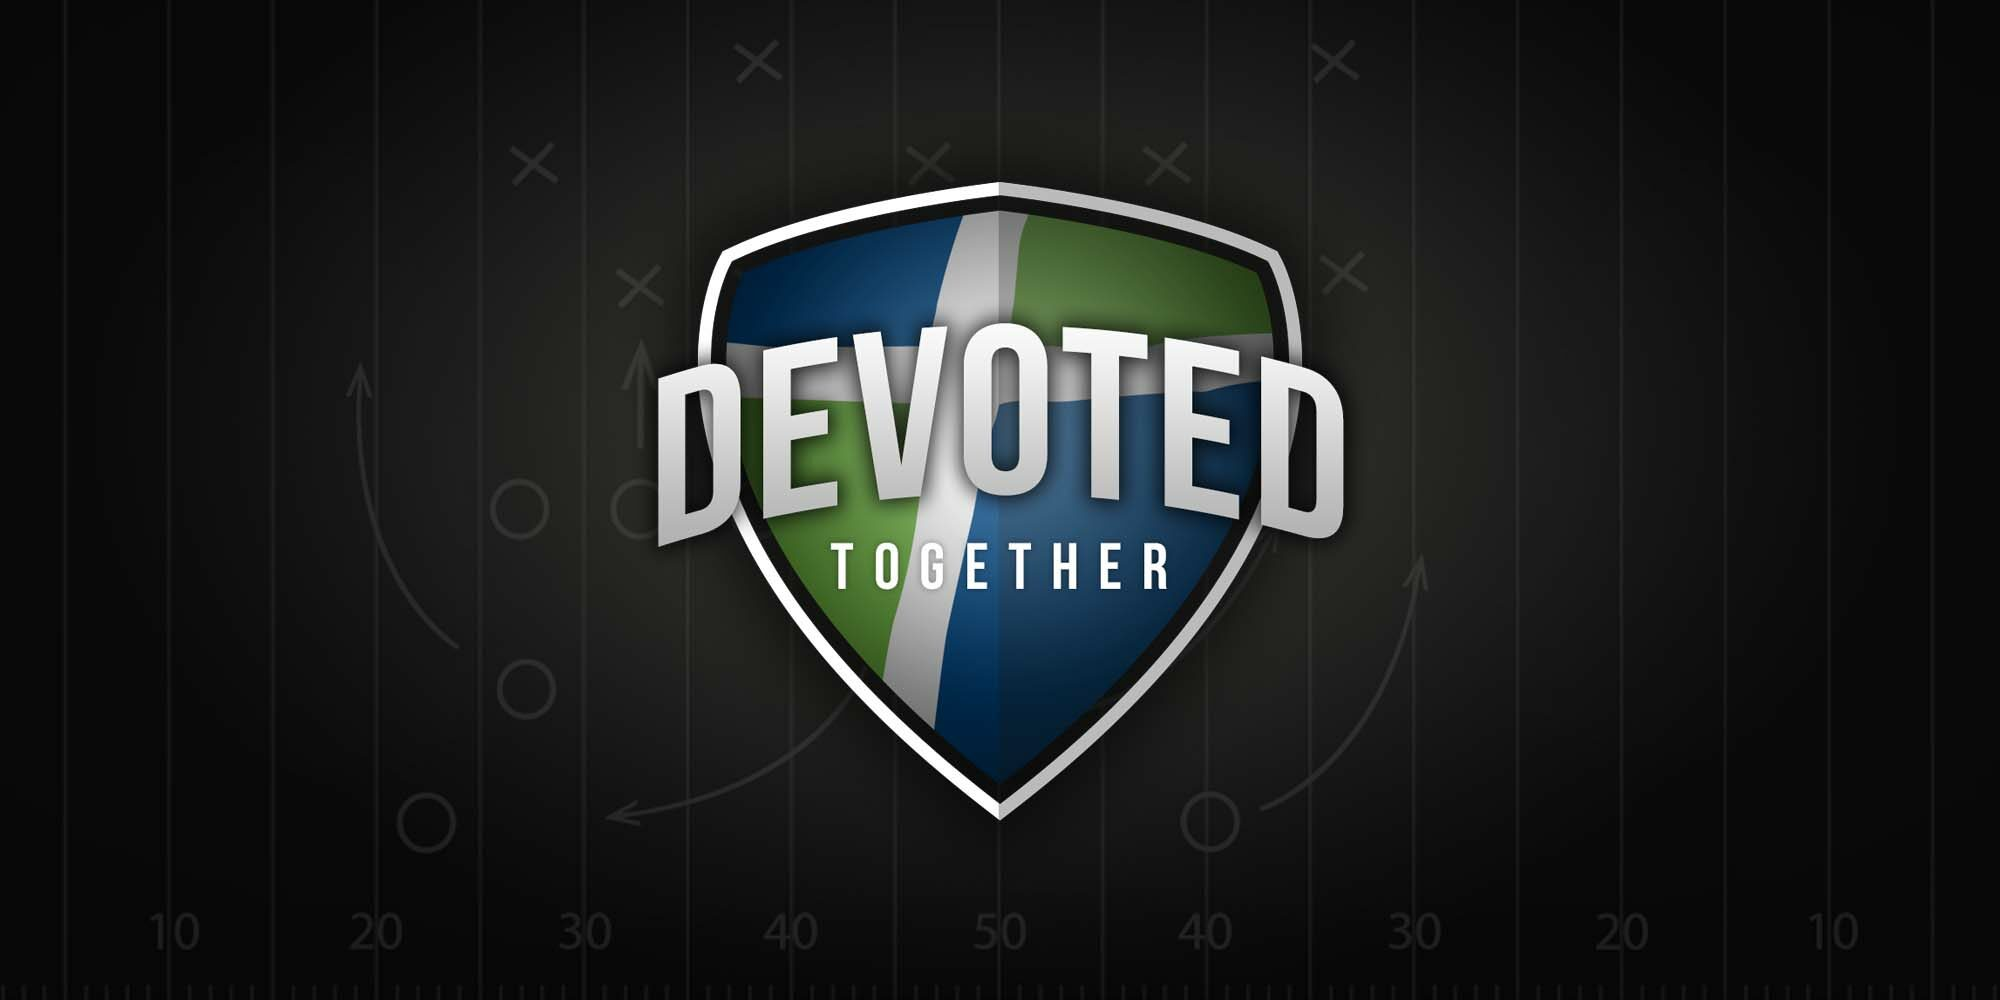 Devoted Together - Web Landing Page (2000x1000)